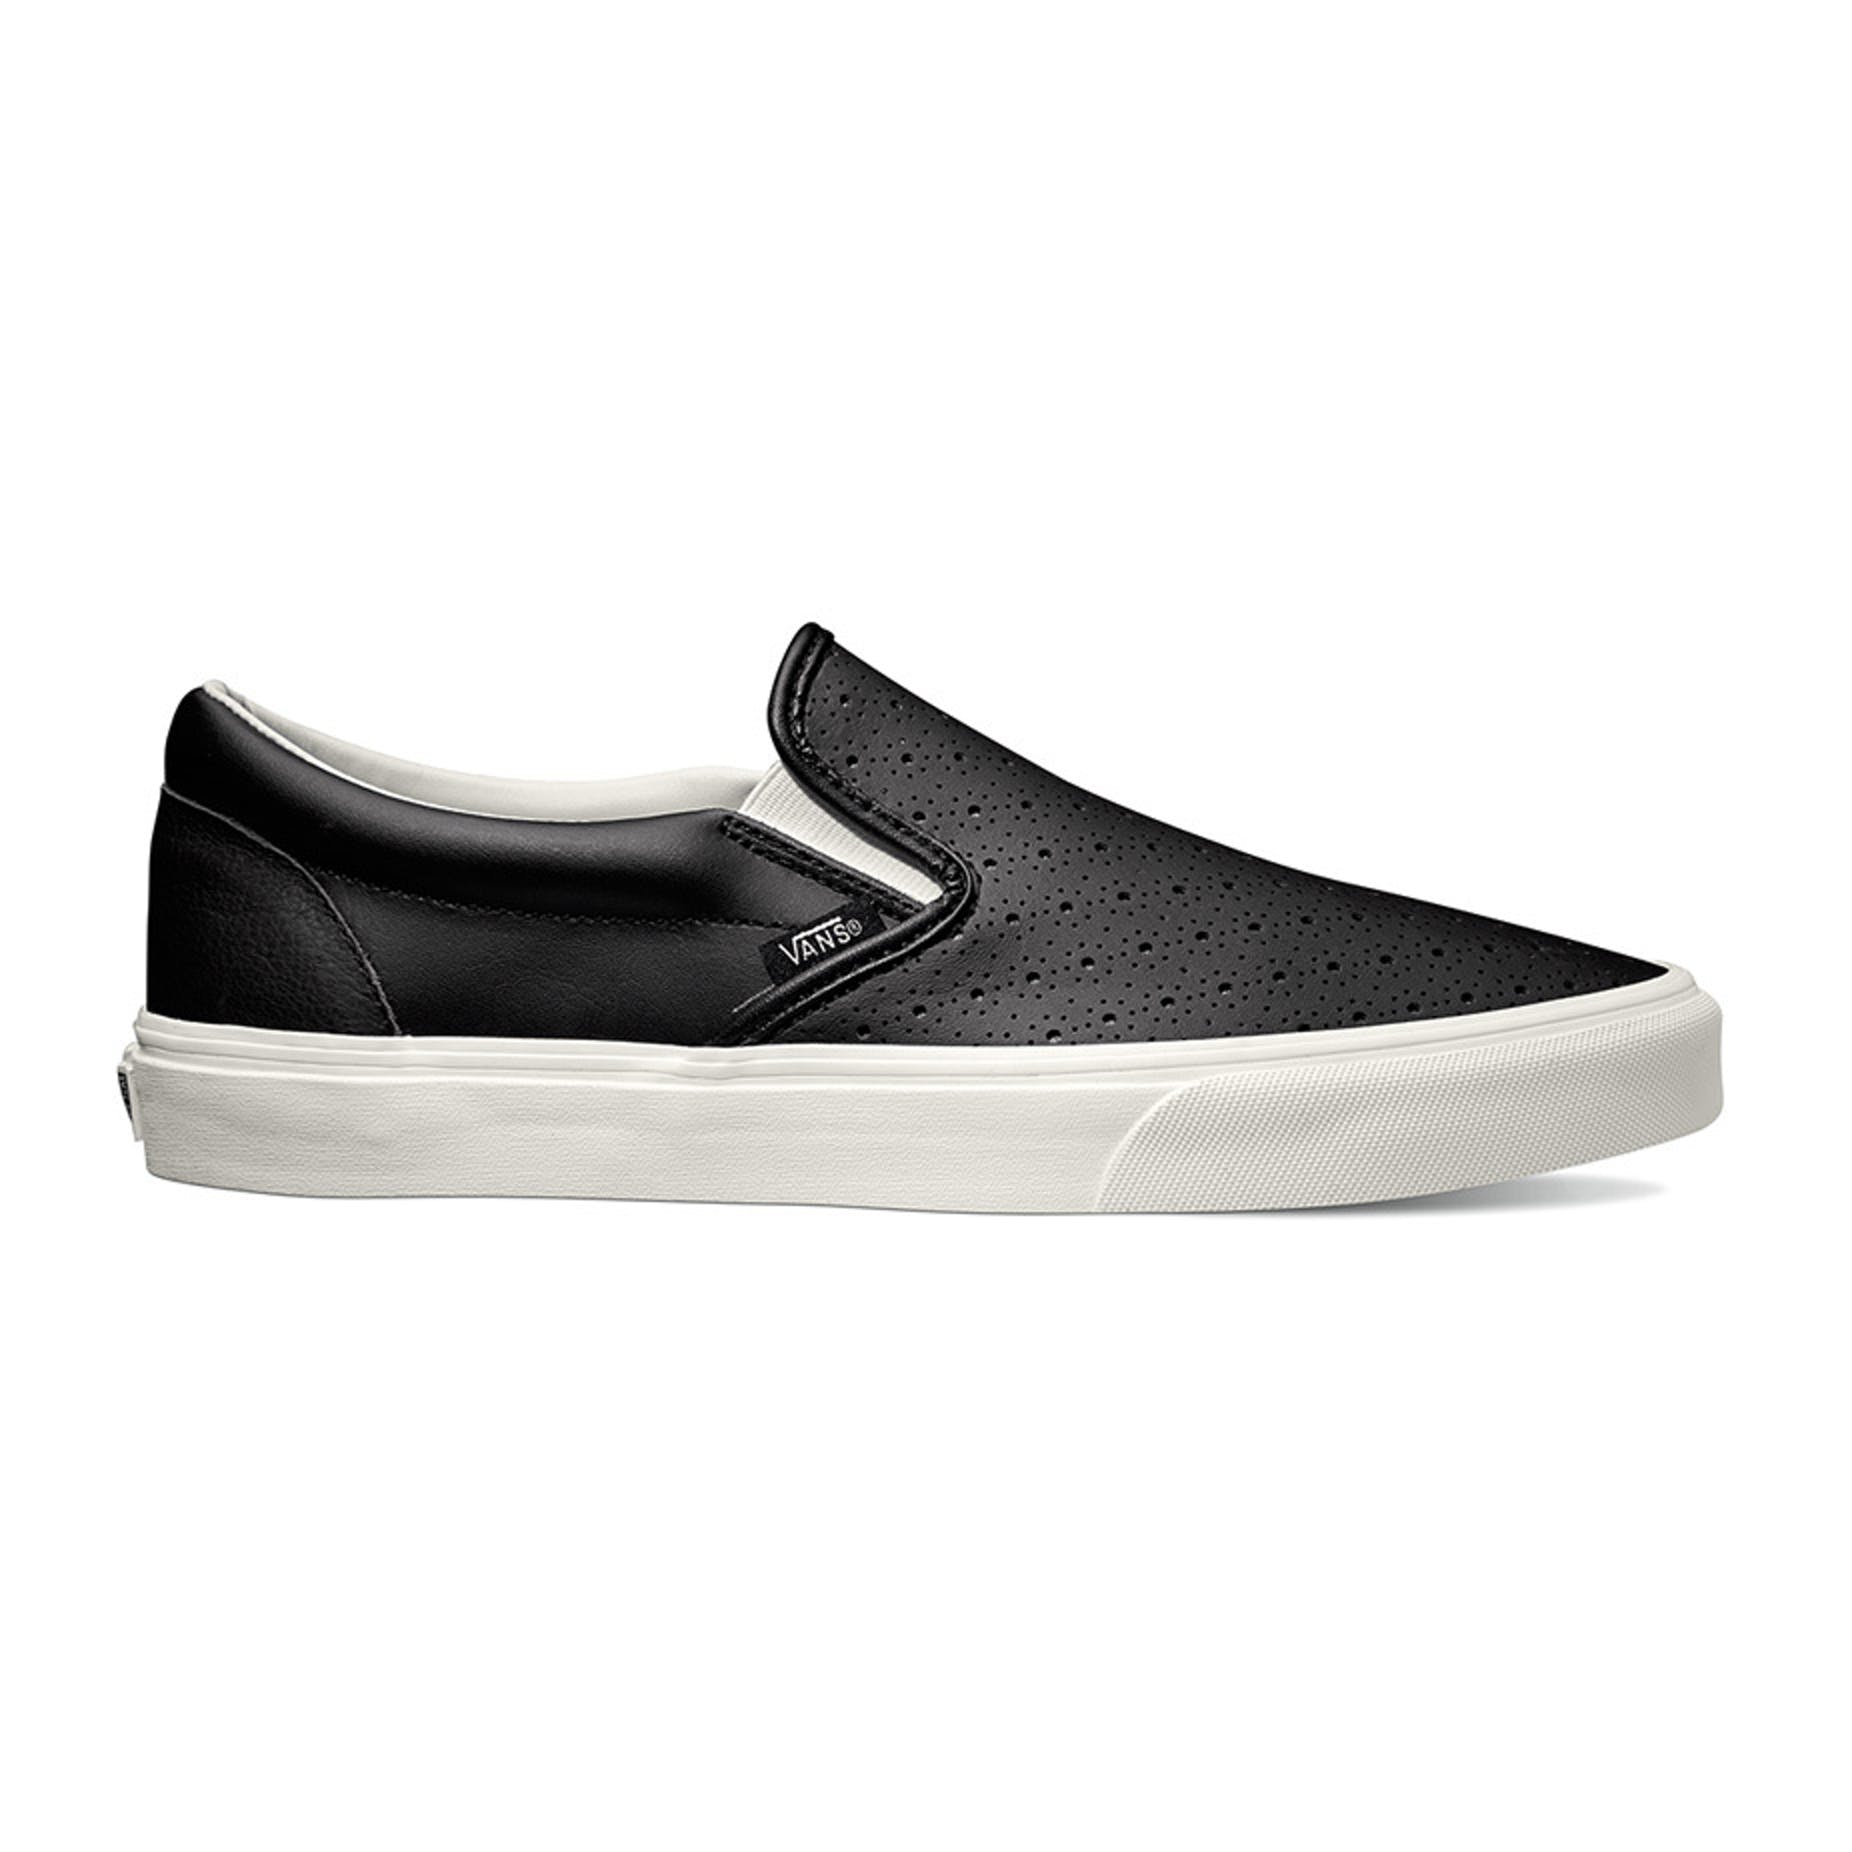 ef330bf018 Vans Classic Slip-On Leather Perf Shoe - Black/White